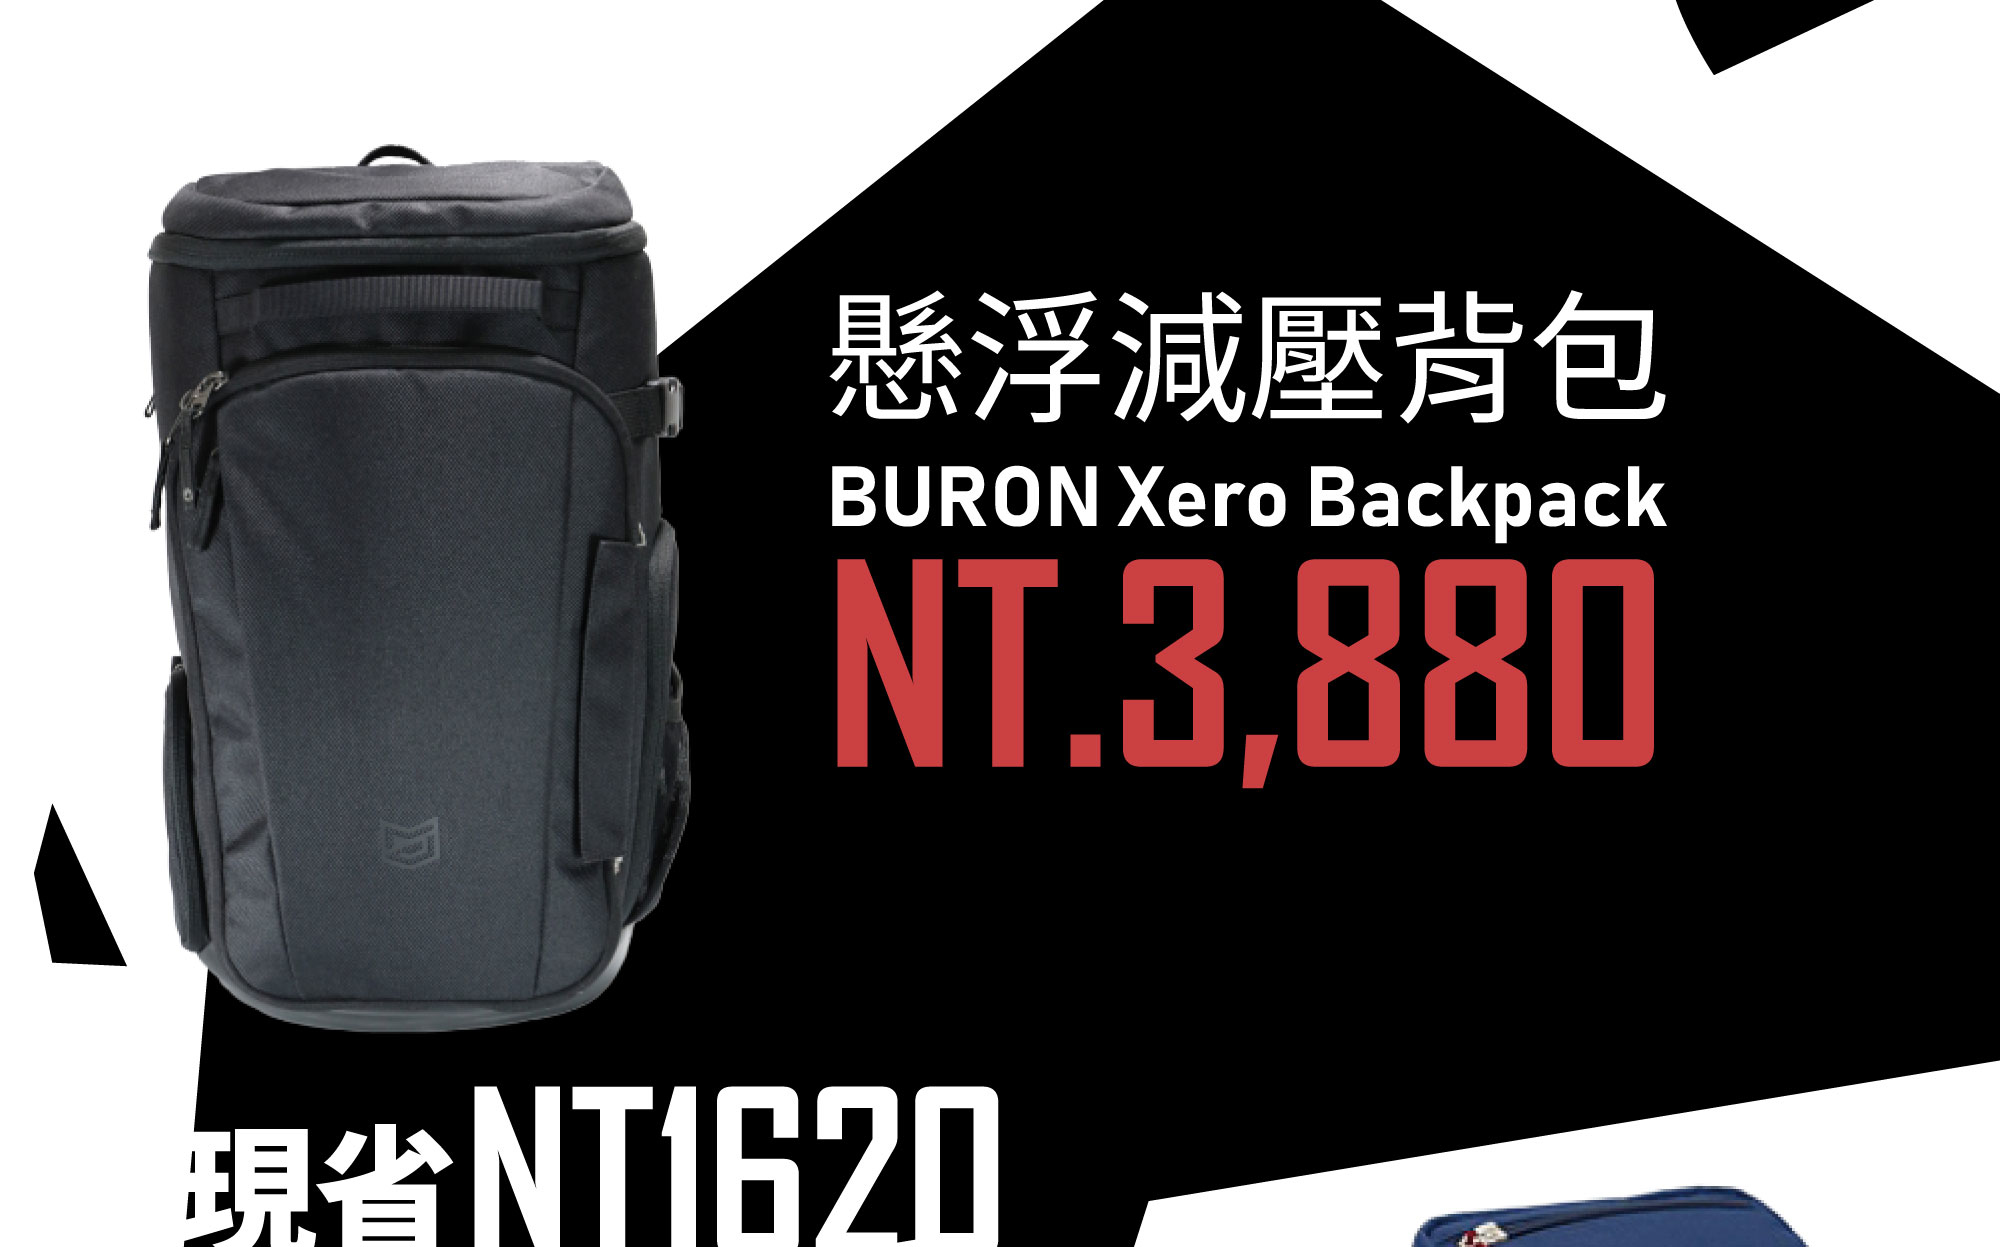 buron-xero-backpack-懸浮減壓背包